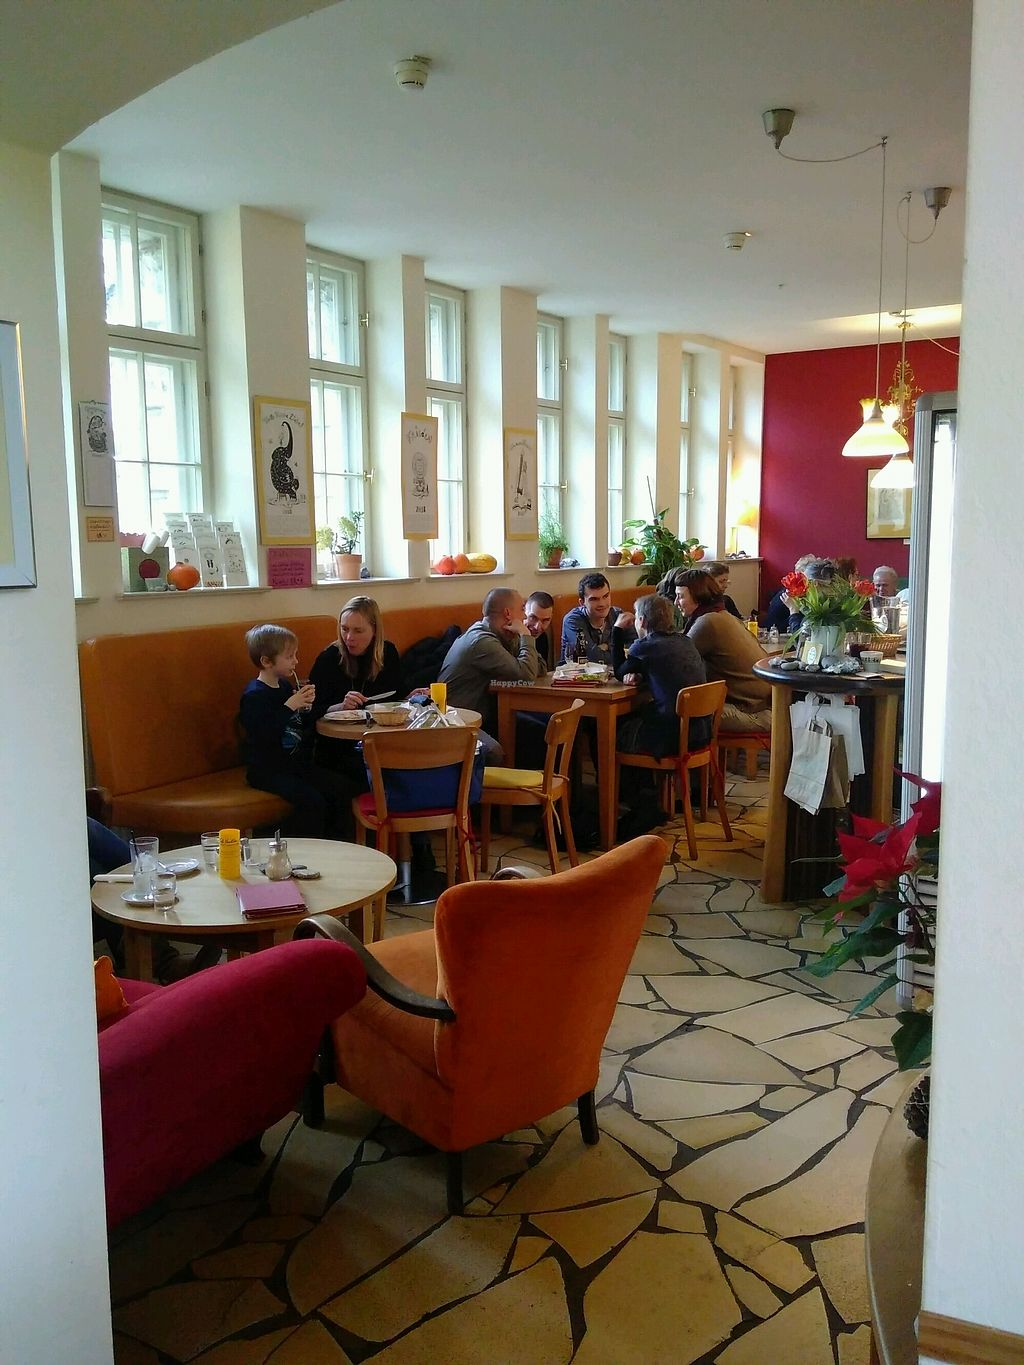 "Photo of Cafe Kieselstein  by <a href=""/members/profile/EmmyVD"">EmmyVD</a> <br/>Cosy indoor seating area <br/> January 27, 2018  - <a href='/contact/abuse/image/18878/351467'>Report</a>"